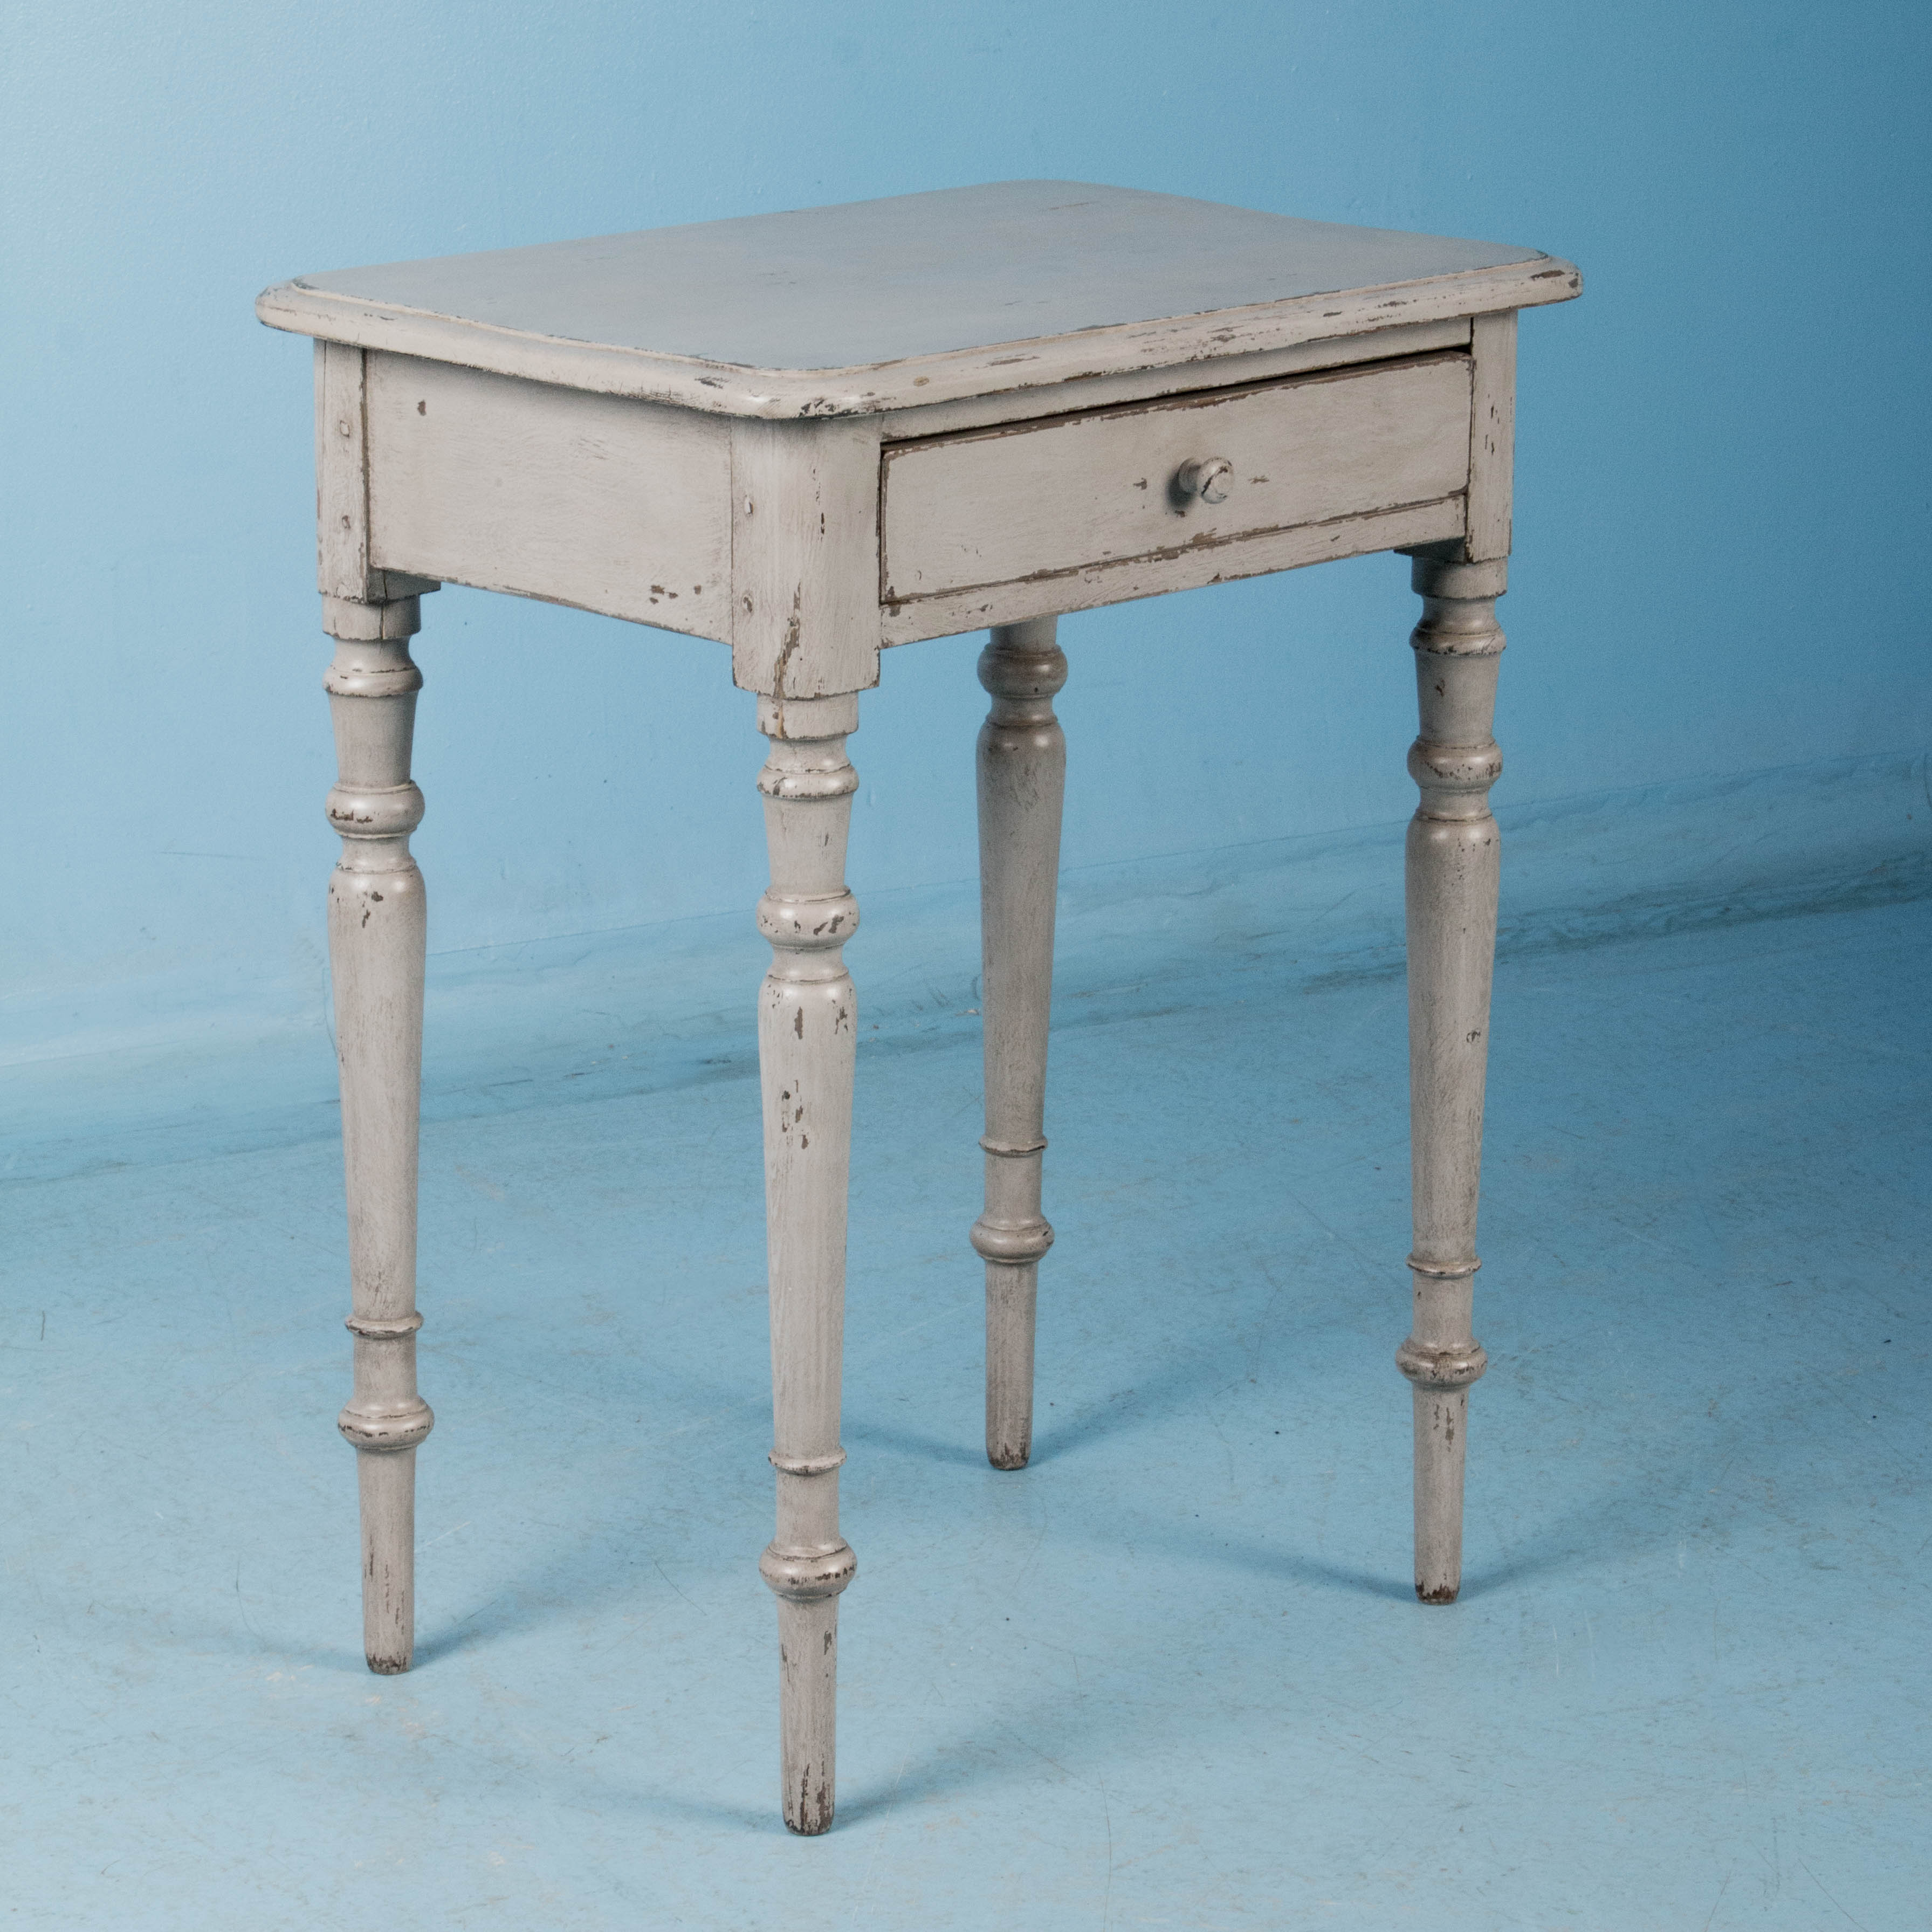 Small Antique Danish Country Side Table Painted GrayReturn to Nightstands. Small Antique Danish Country Side Table Painted Gray